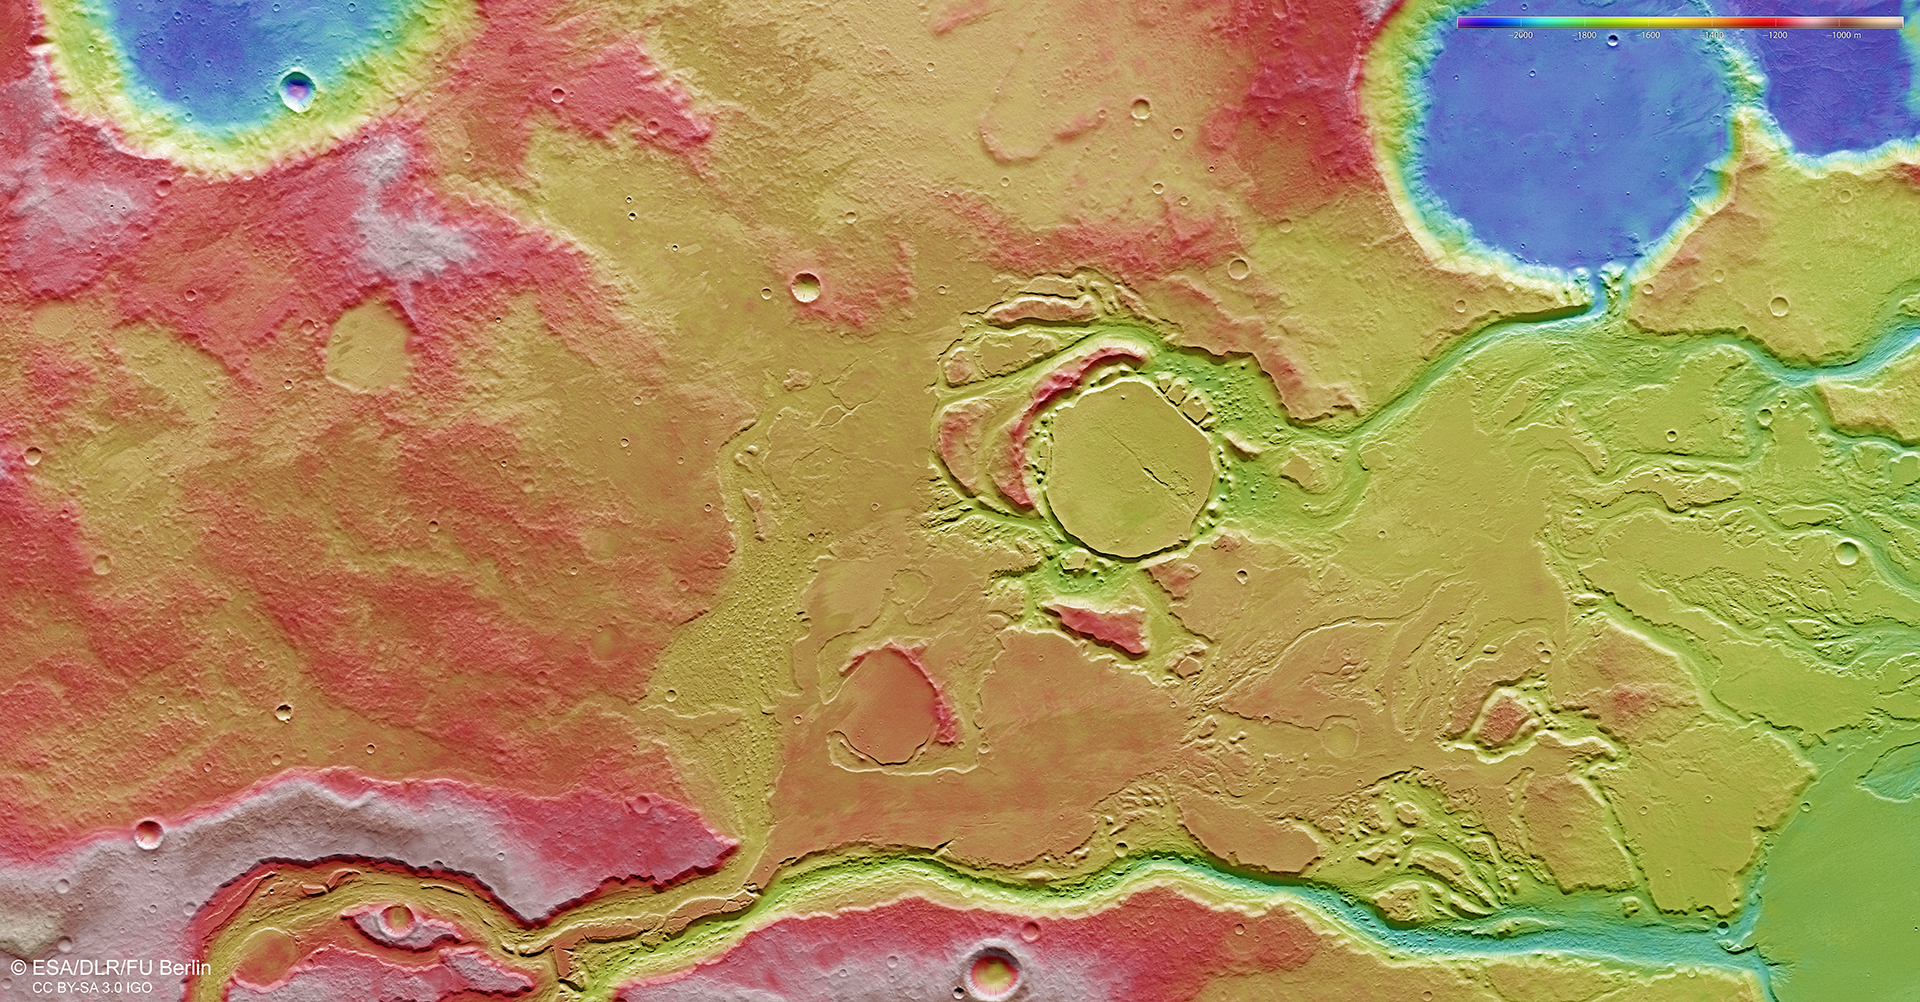 Mangala_Valles_topography